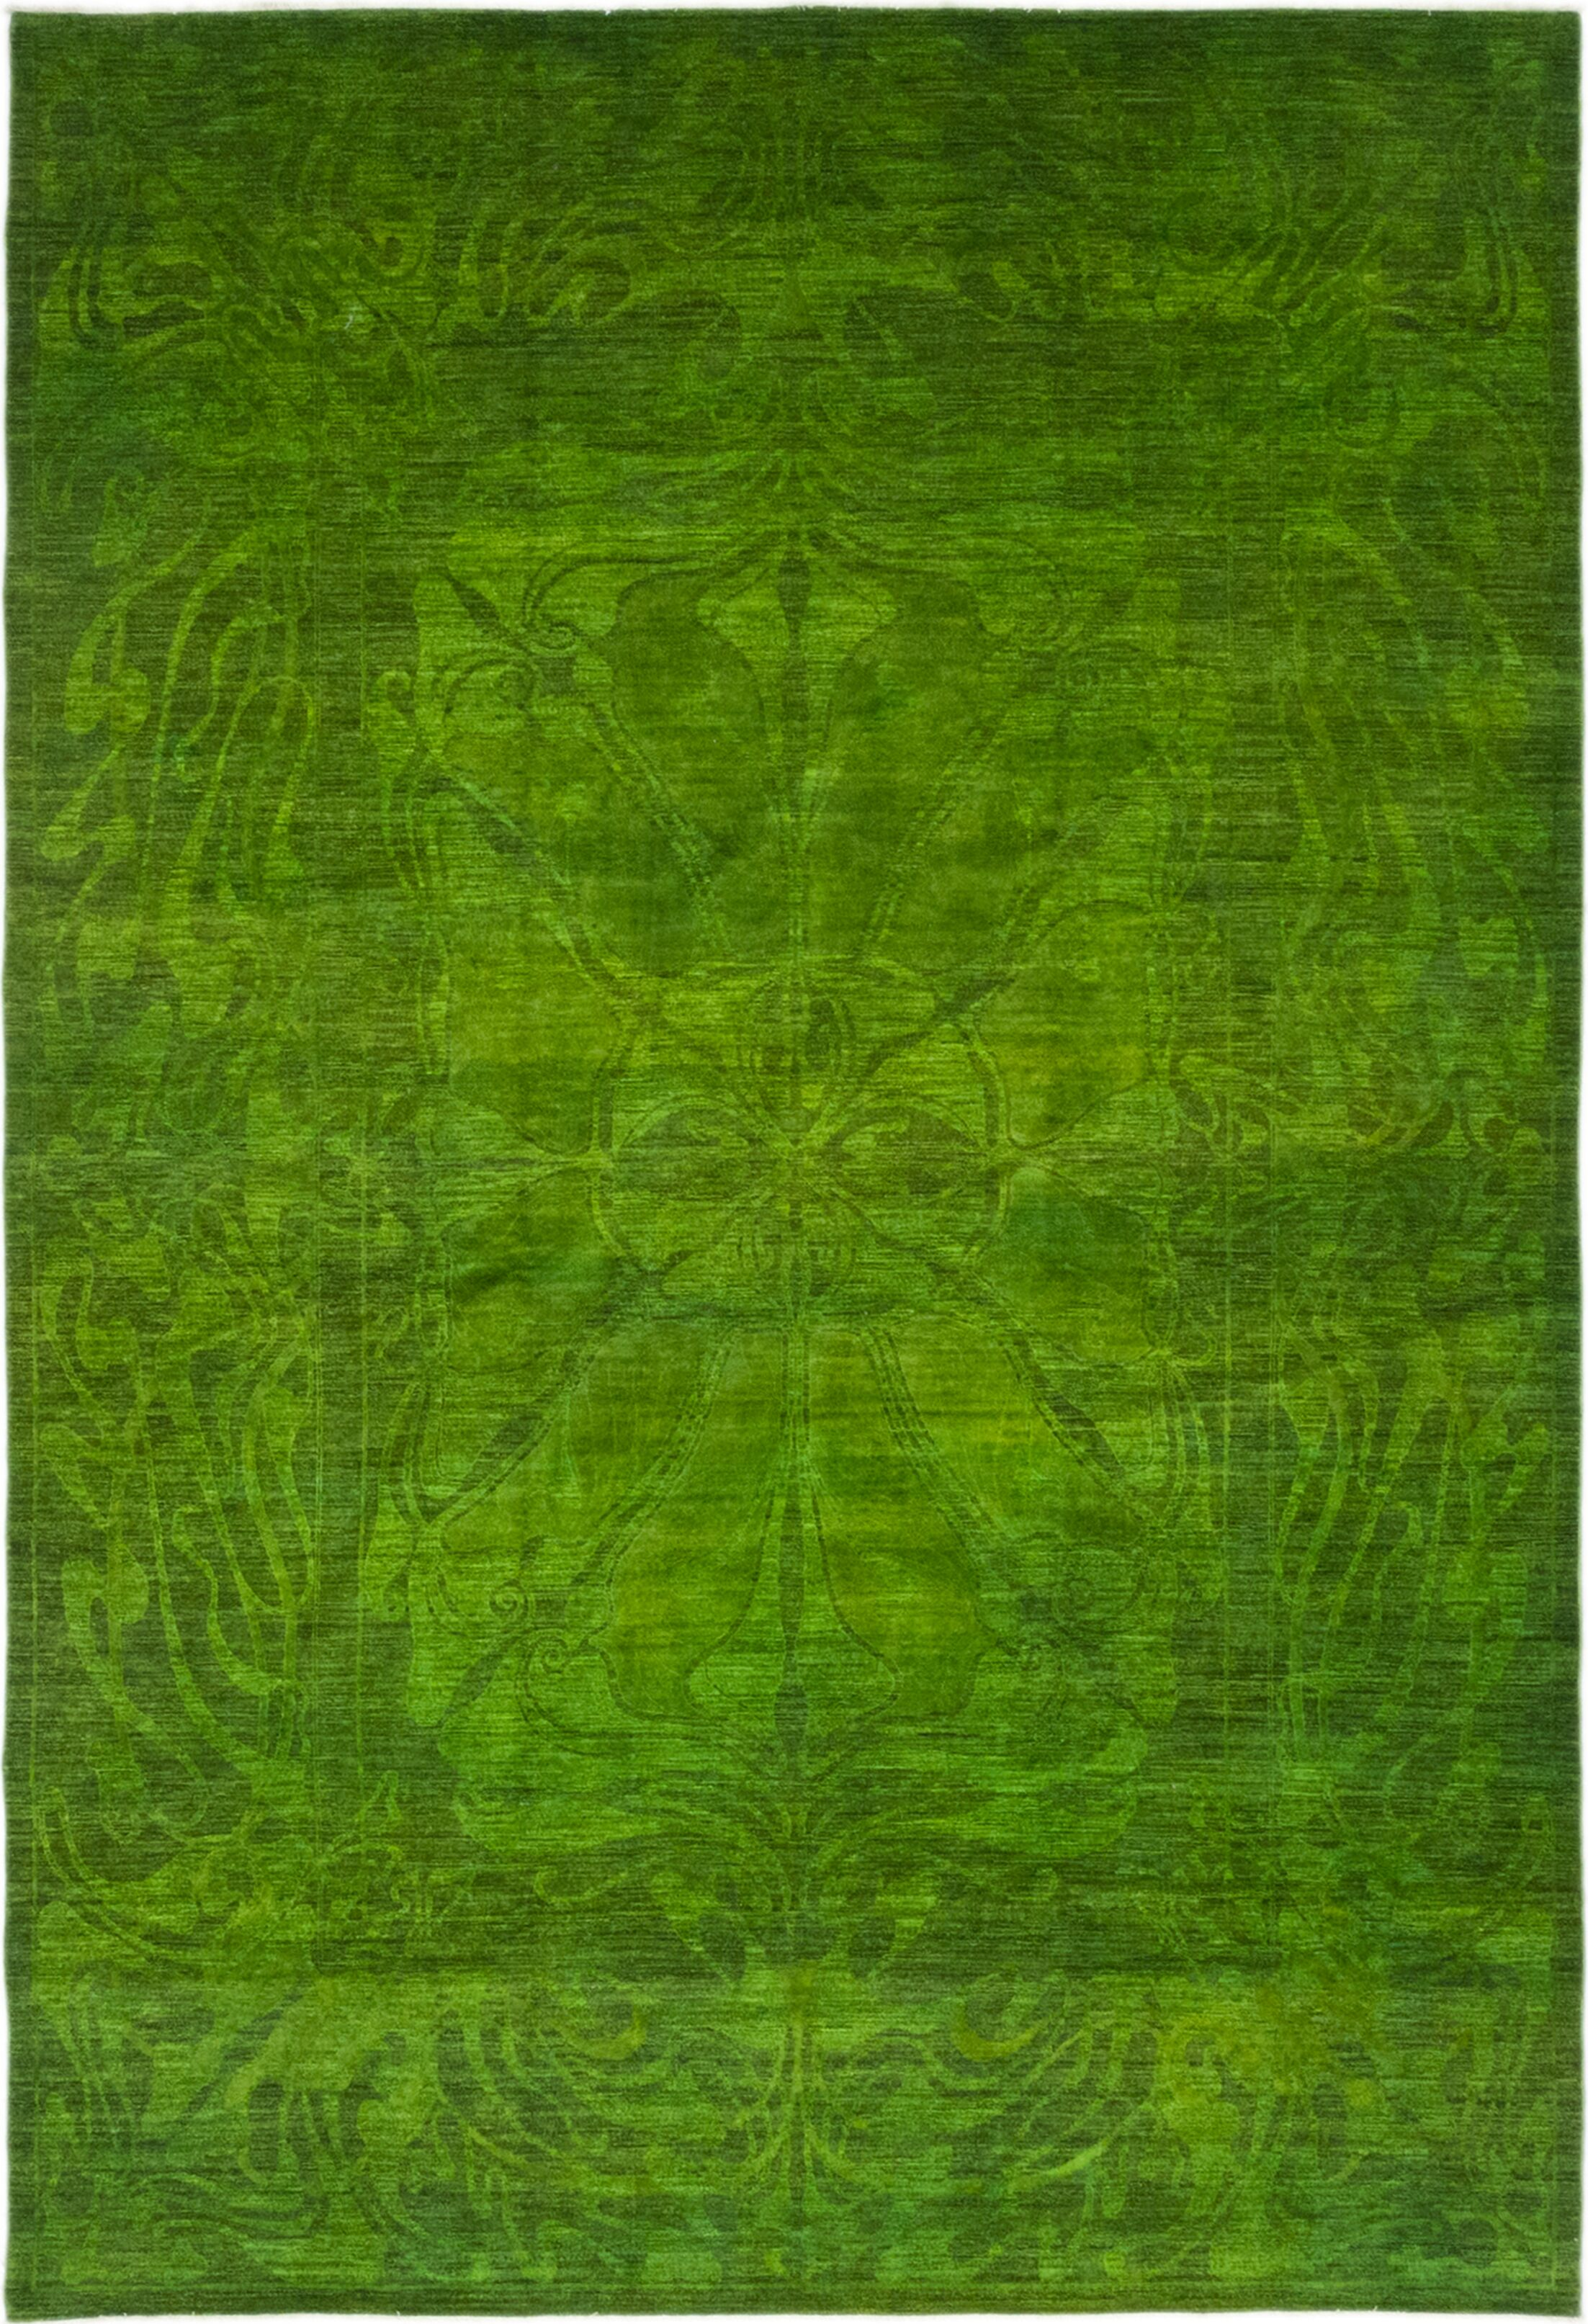 One-of-a-Kind Courter Hand-Knotted Wool Green Indoor Area Rug